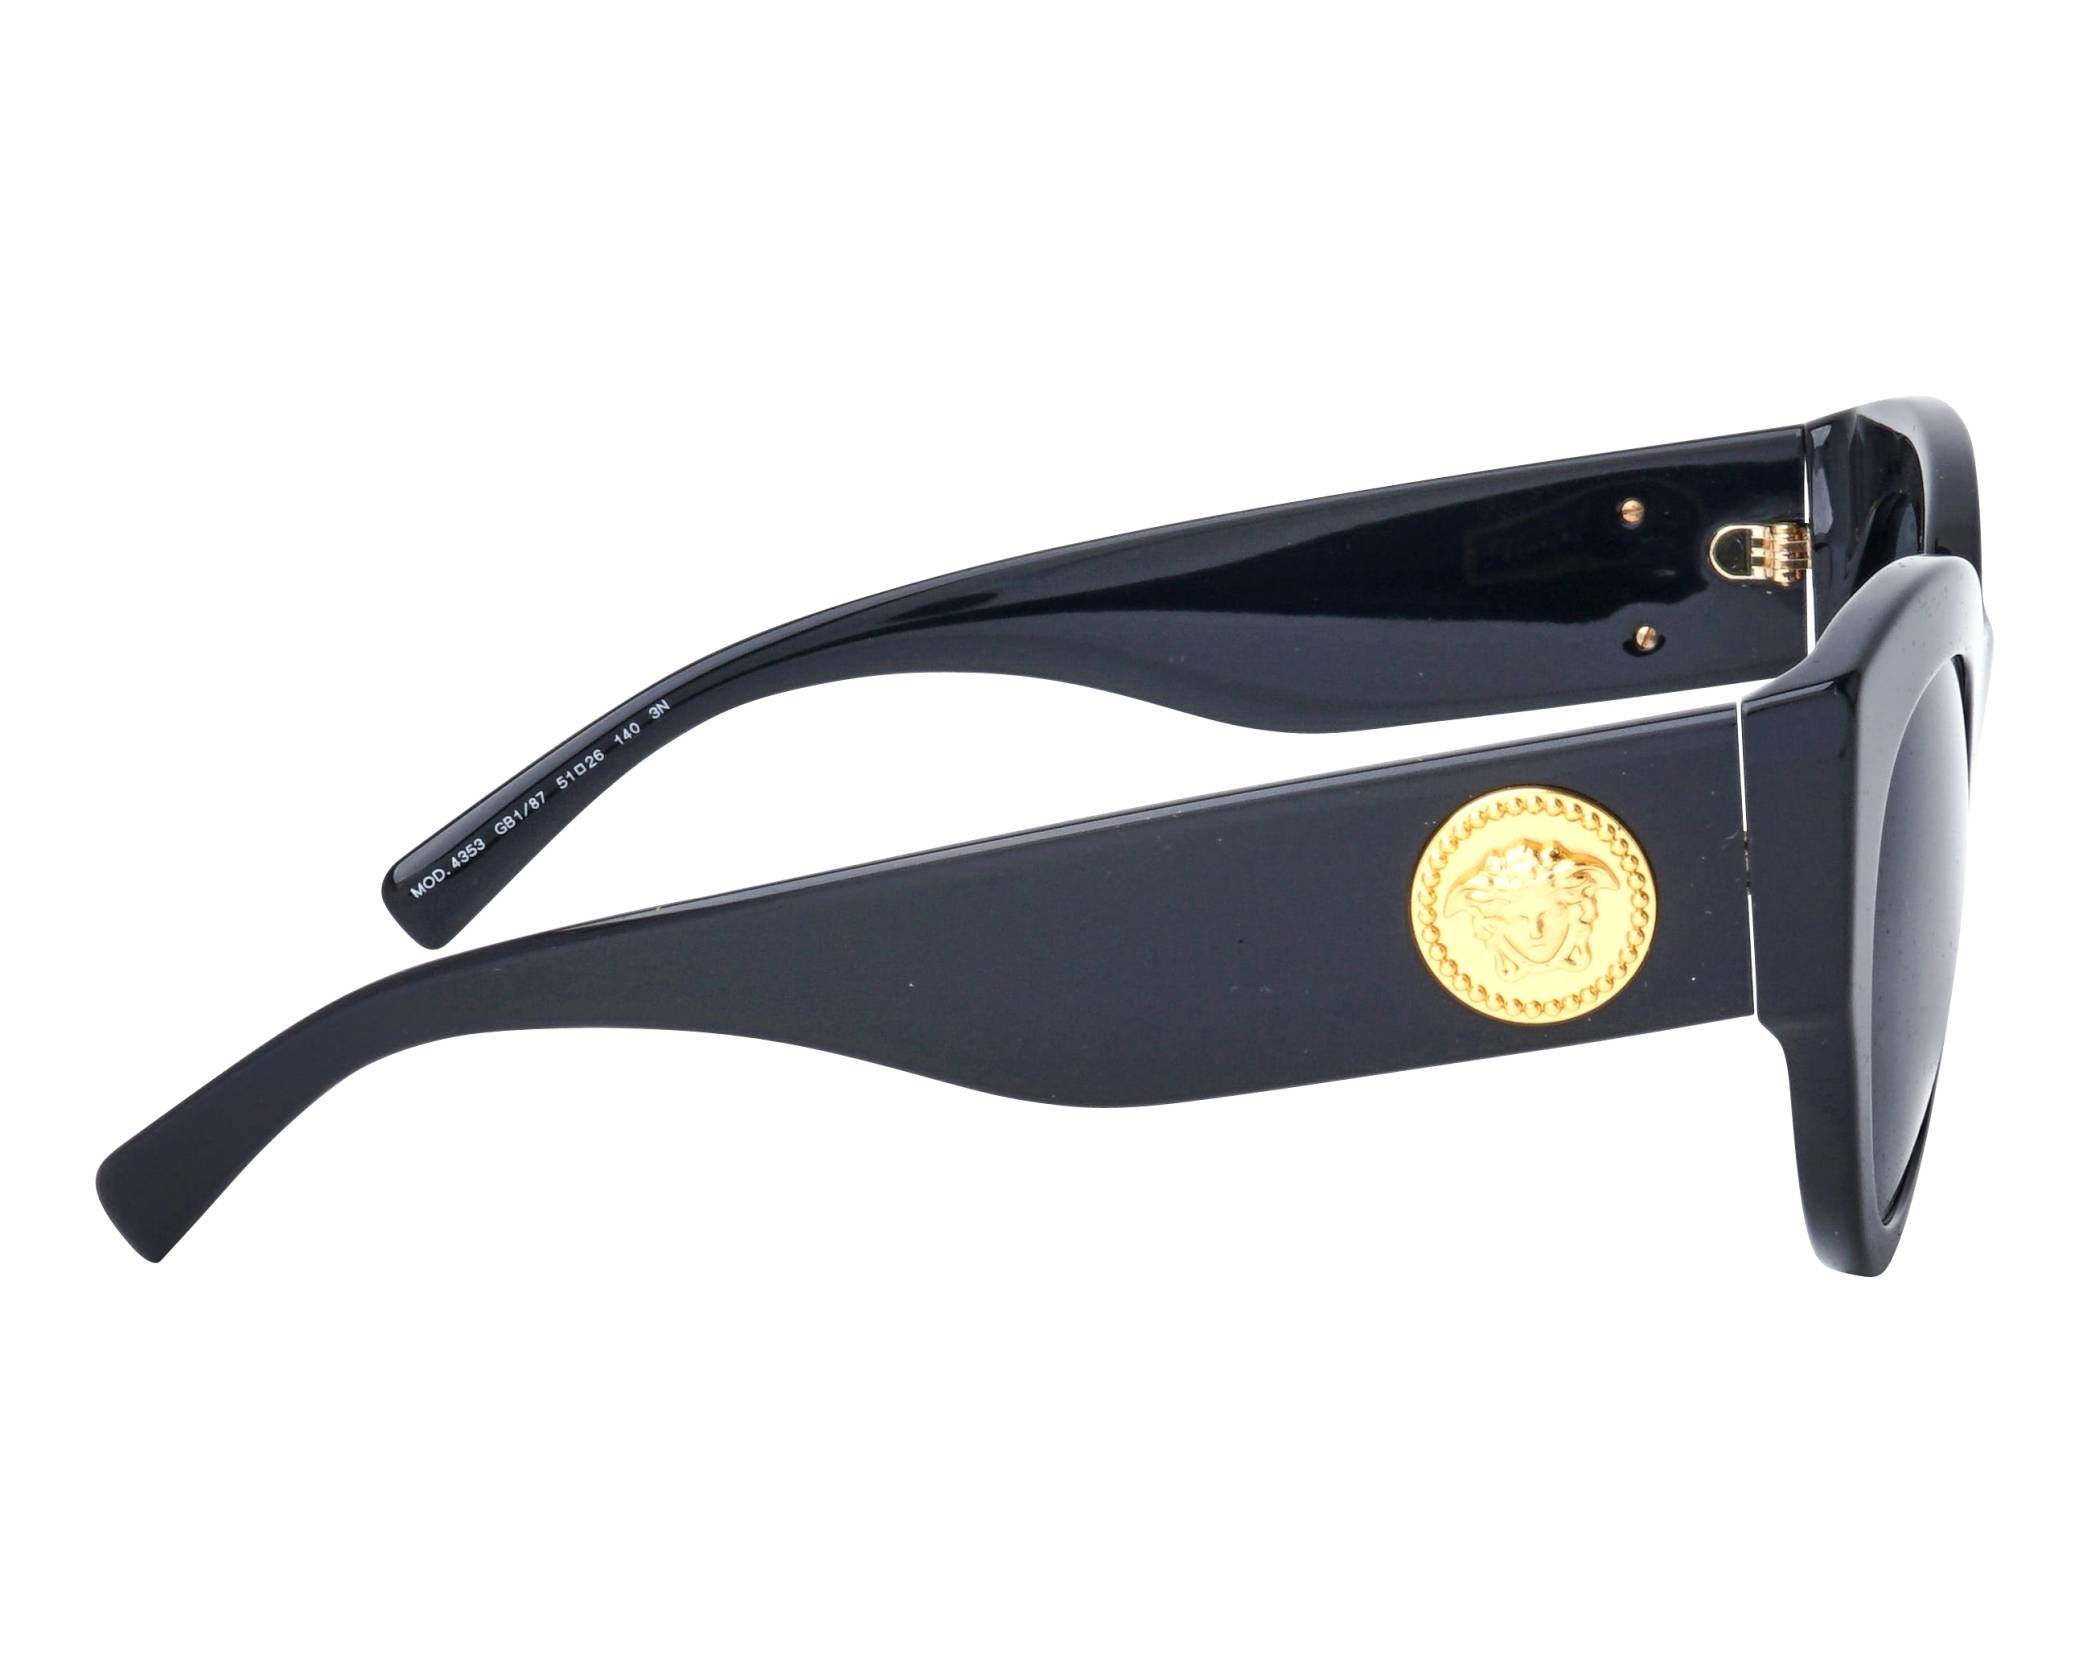 b46c8fc3b29 Sunglasses Versace VE-4353 GB1 87 51-25 Black side view